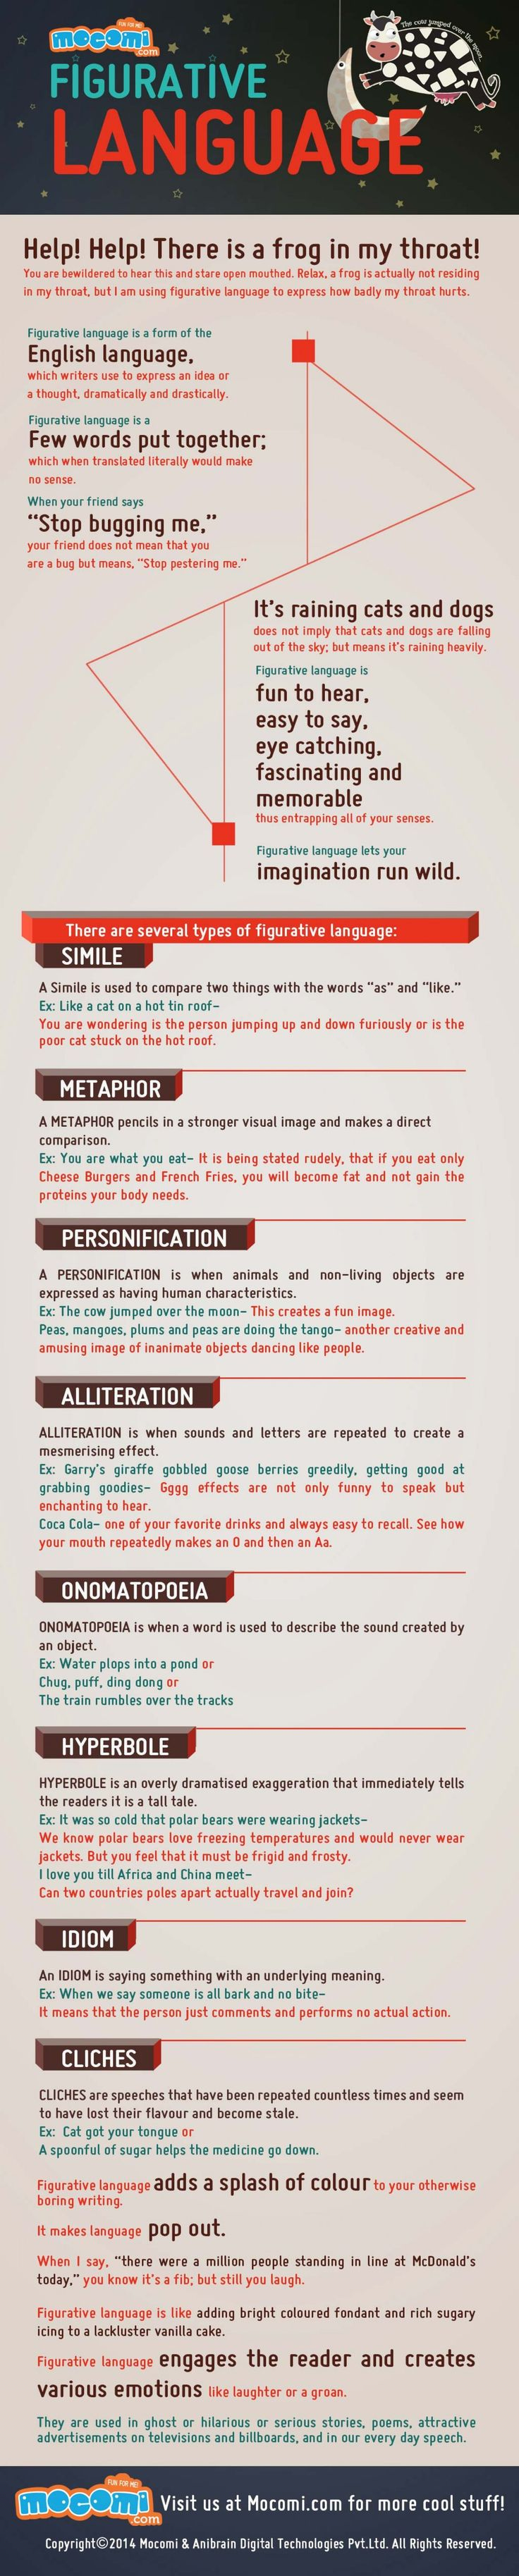 Visualmocomifigurative Languagegraphicthisgraphic Doesn't  Just